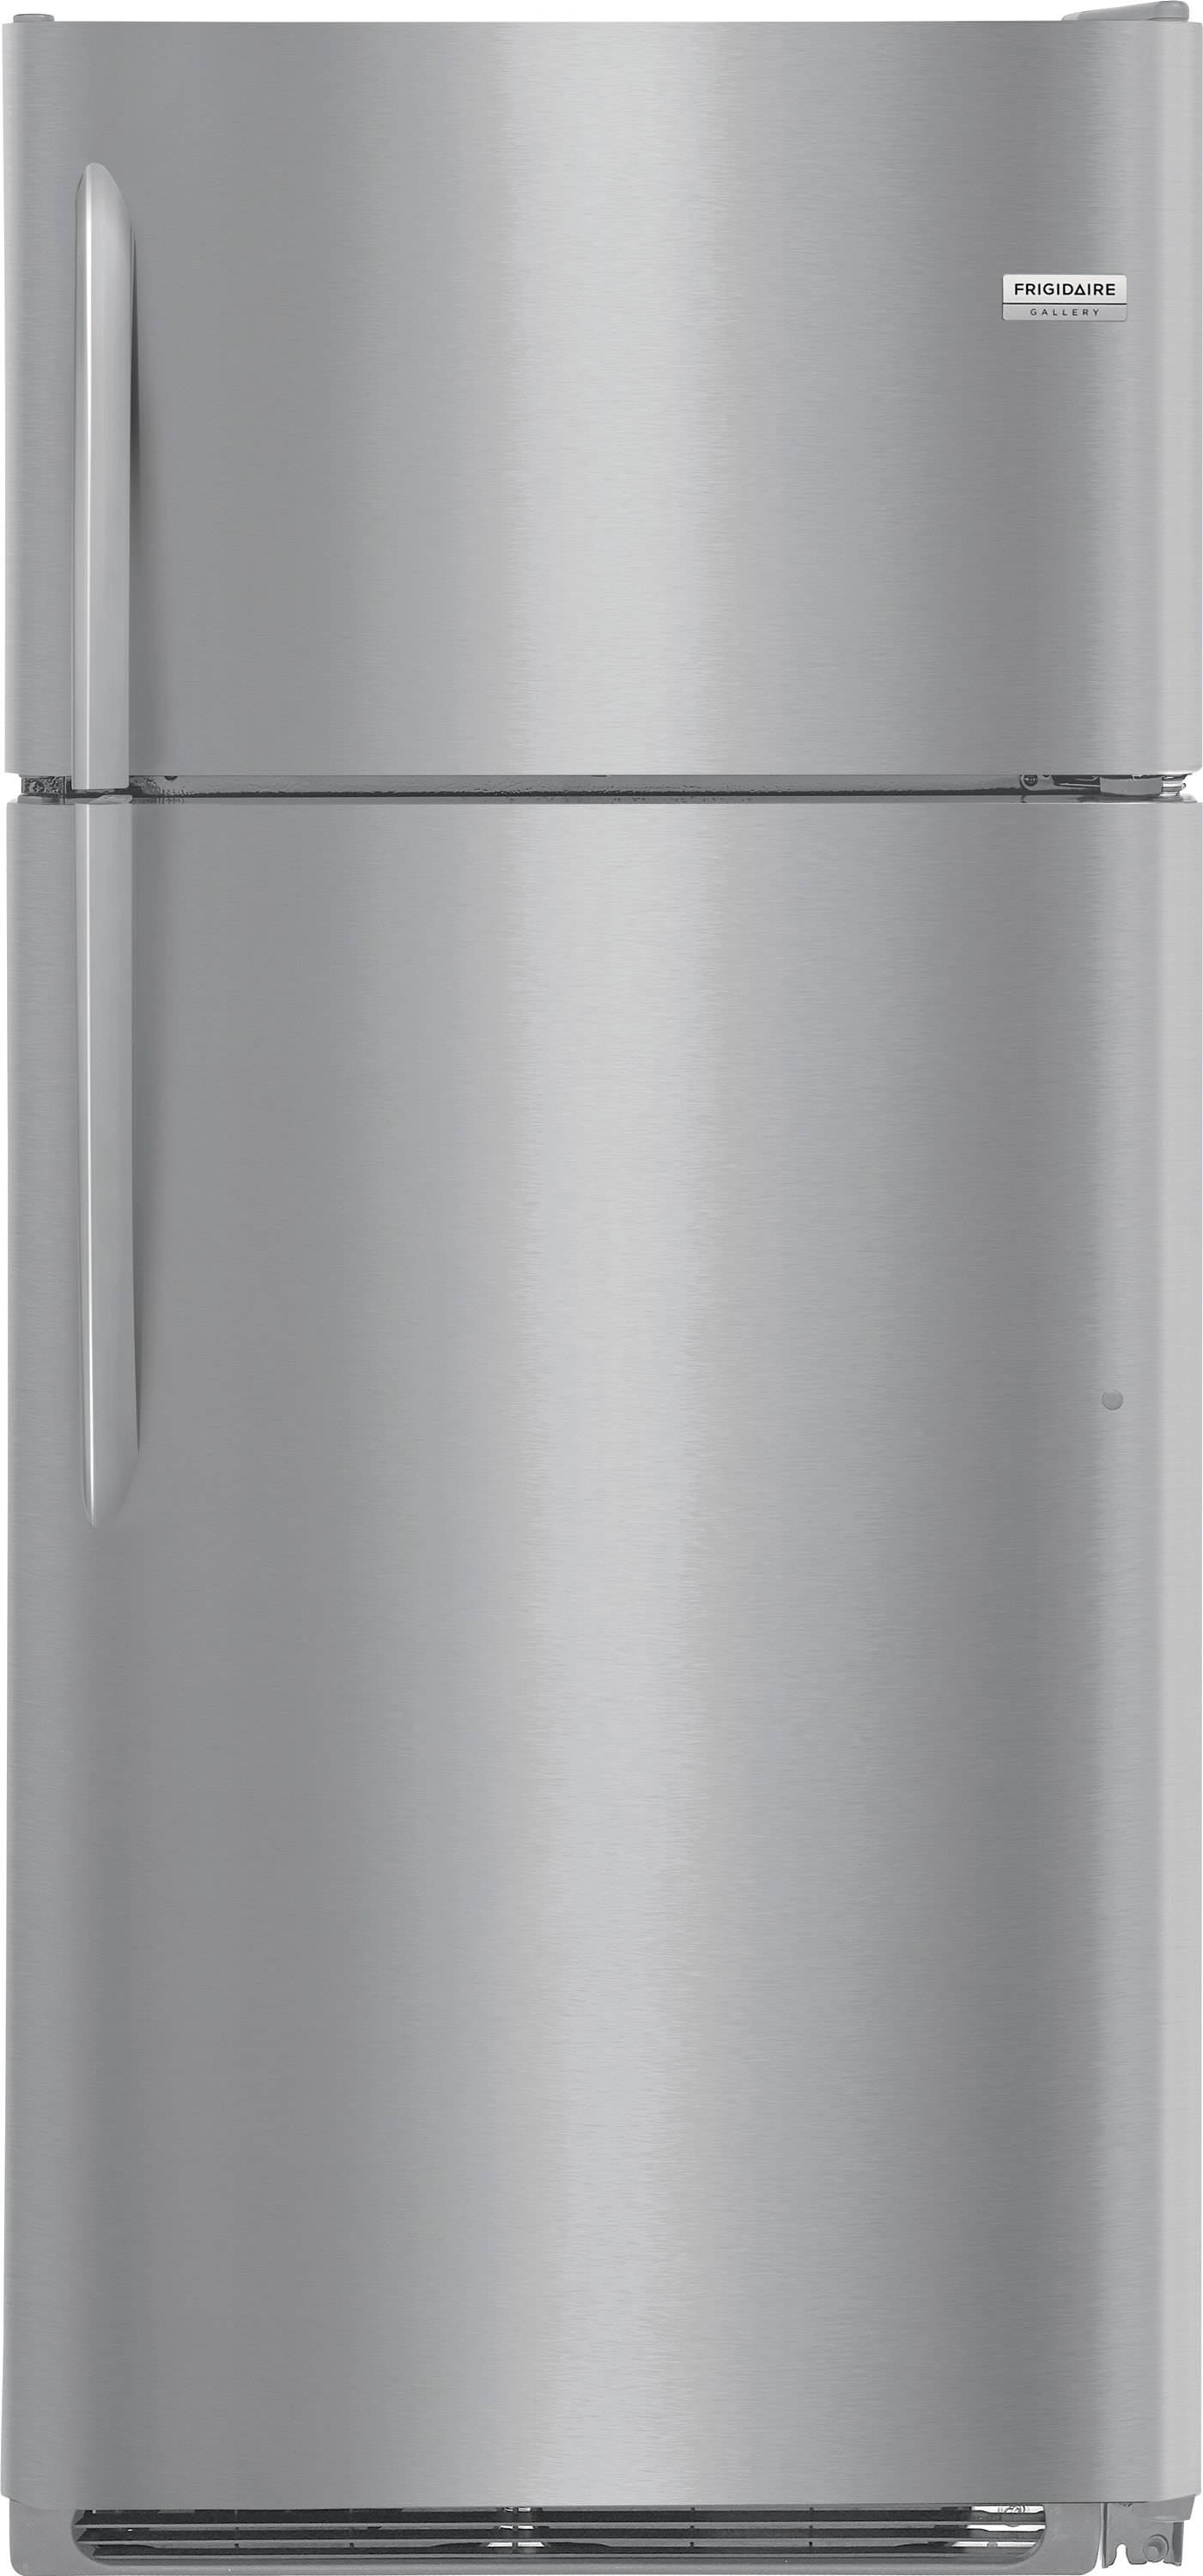 18.0 Cu. Ft. Top Freezer Refrigerator